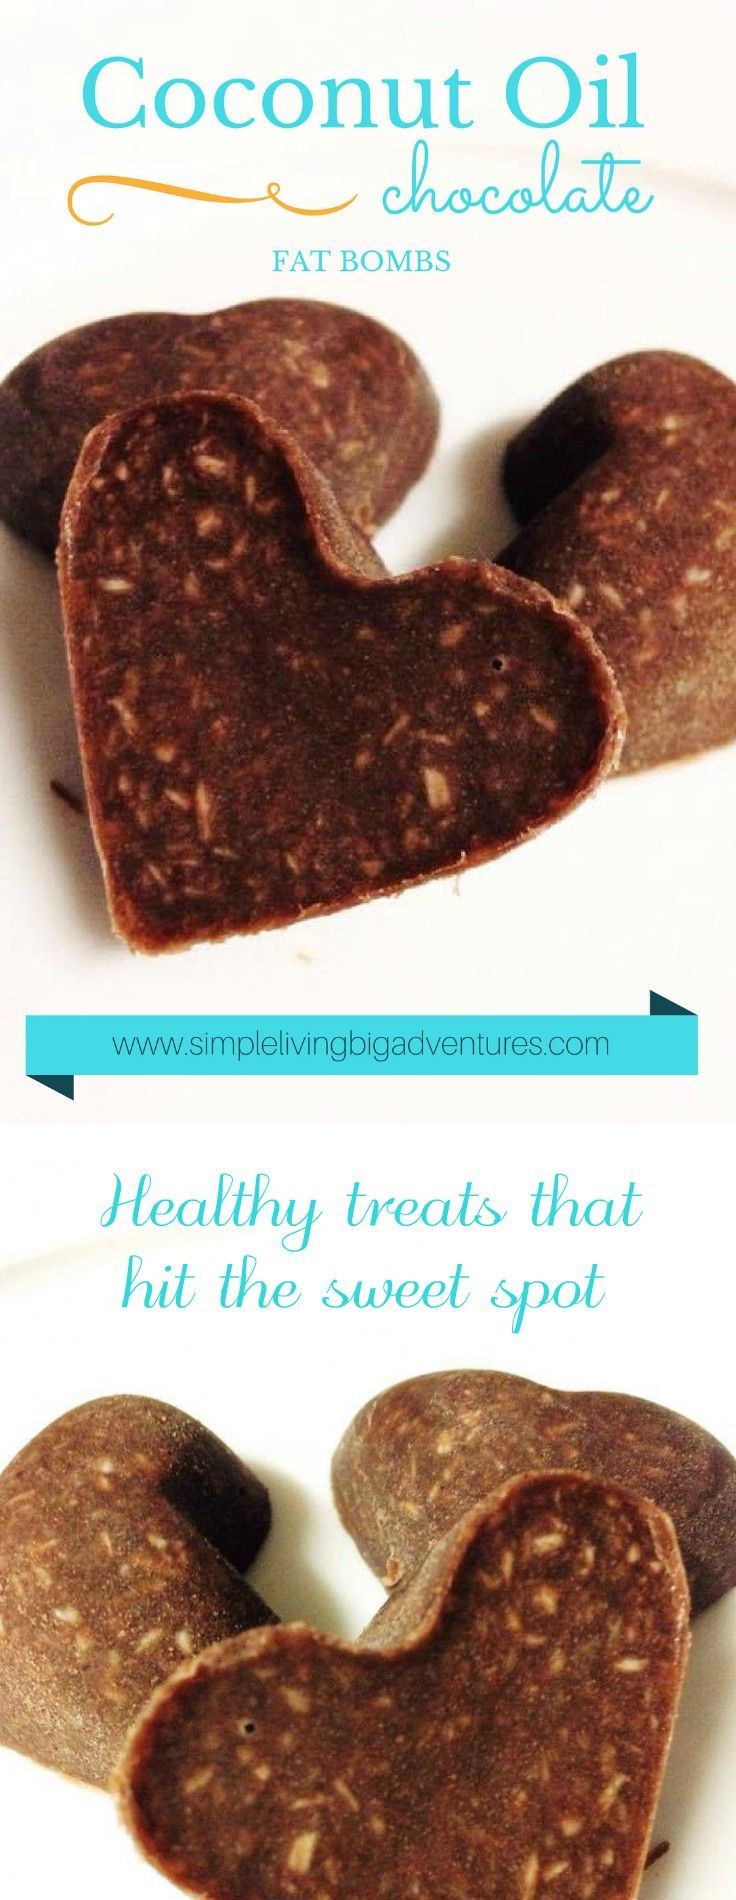 Coconut Oil Chocolate Fat Bombs - a healthy guilt-free treat.